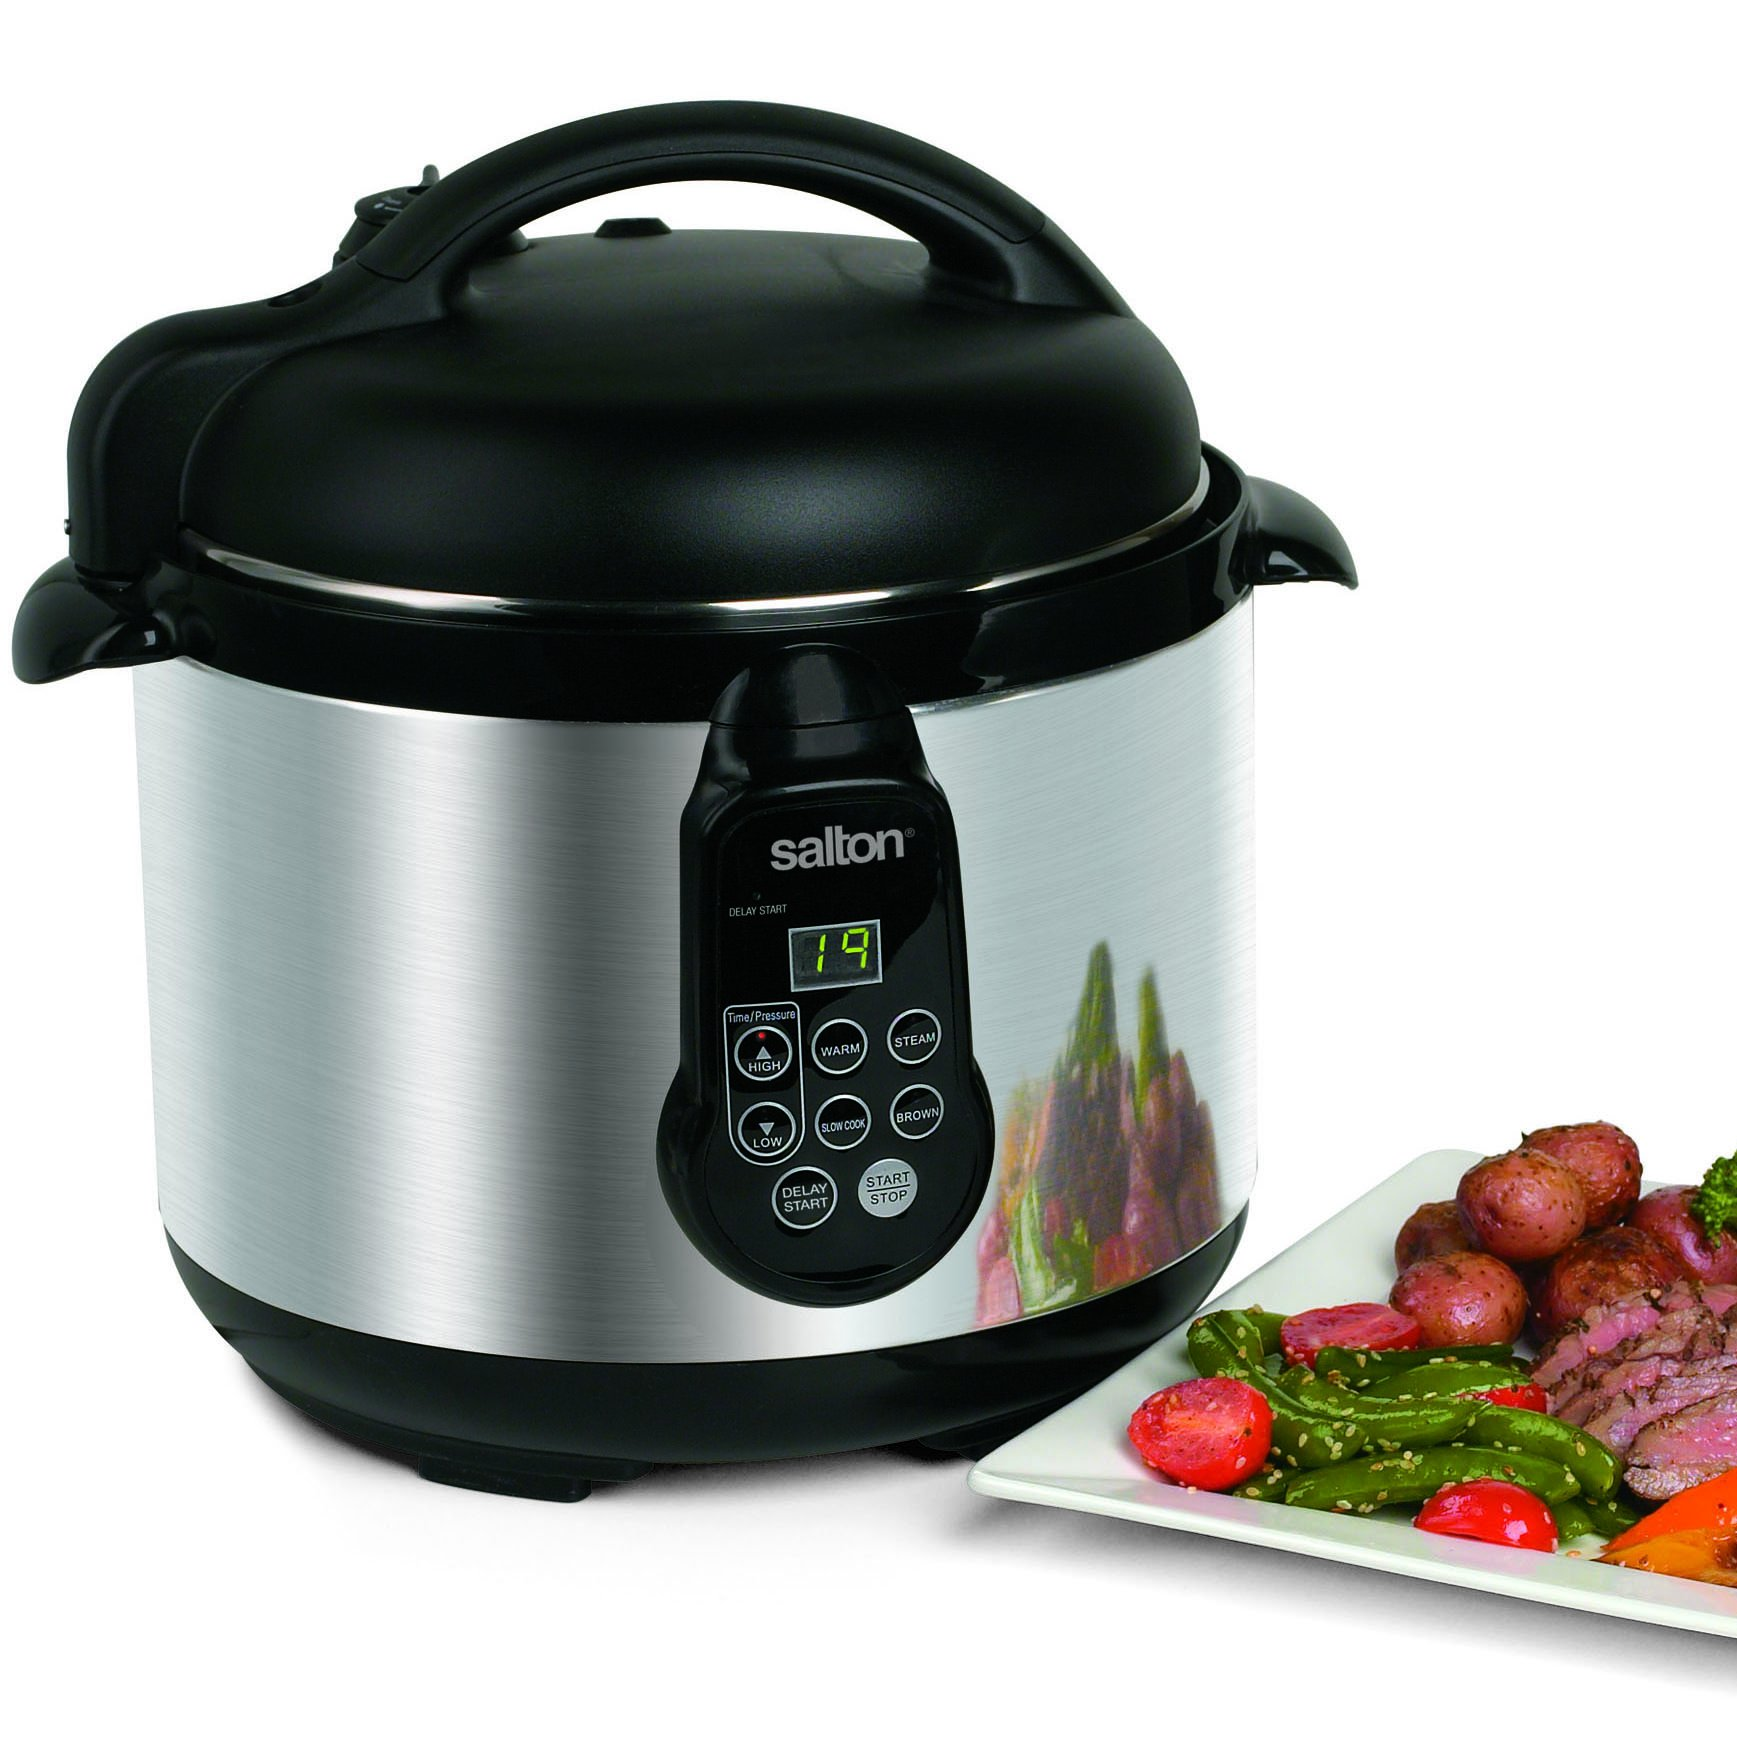 Salton PC1048 Stainless Steel Electronic Pressure Cooker, 5-Liter